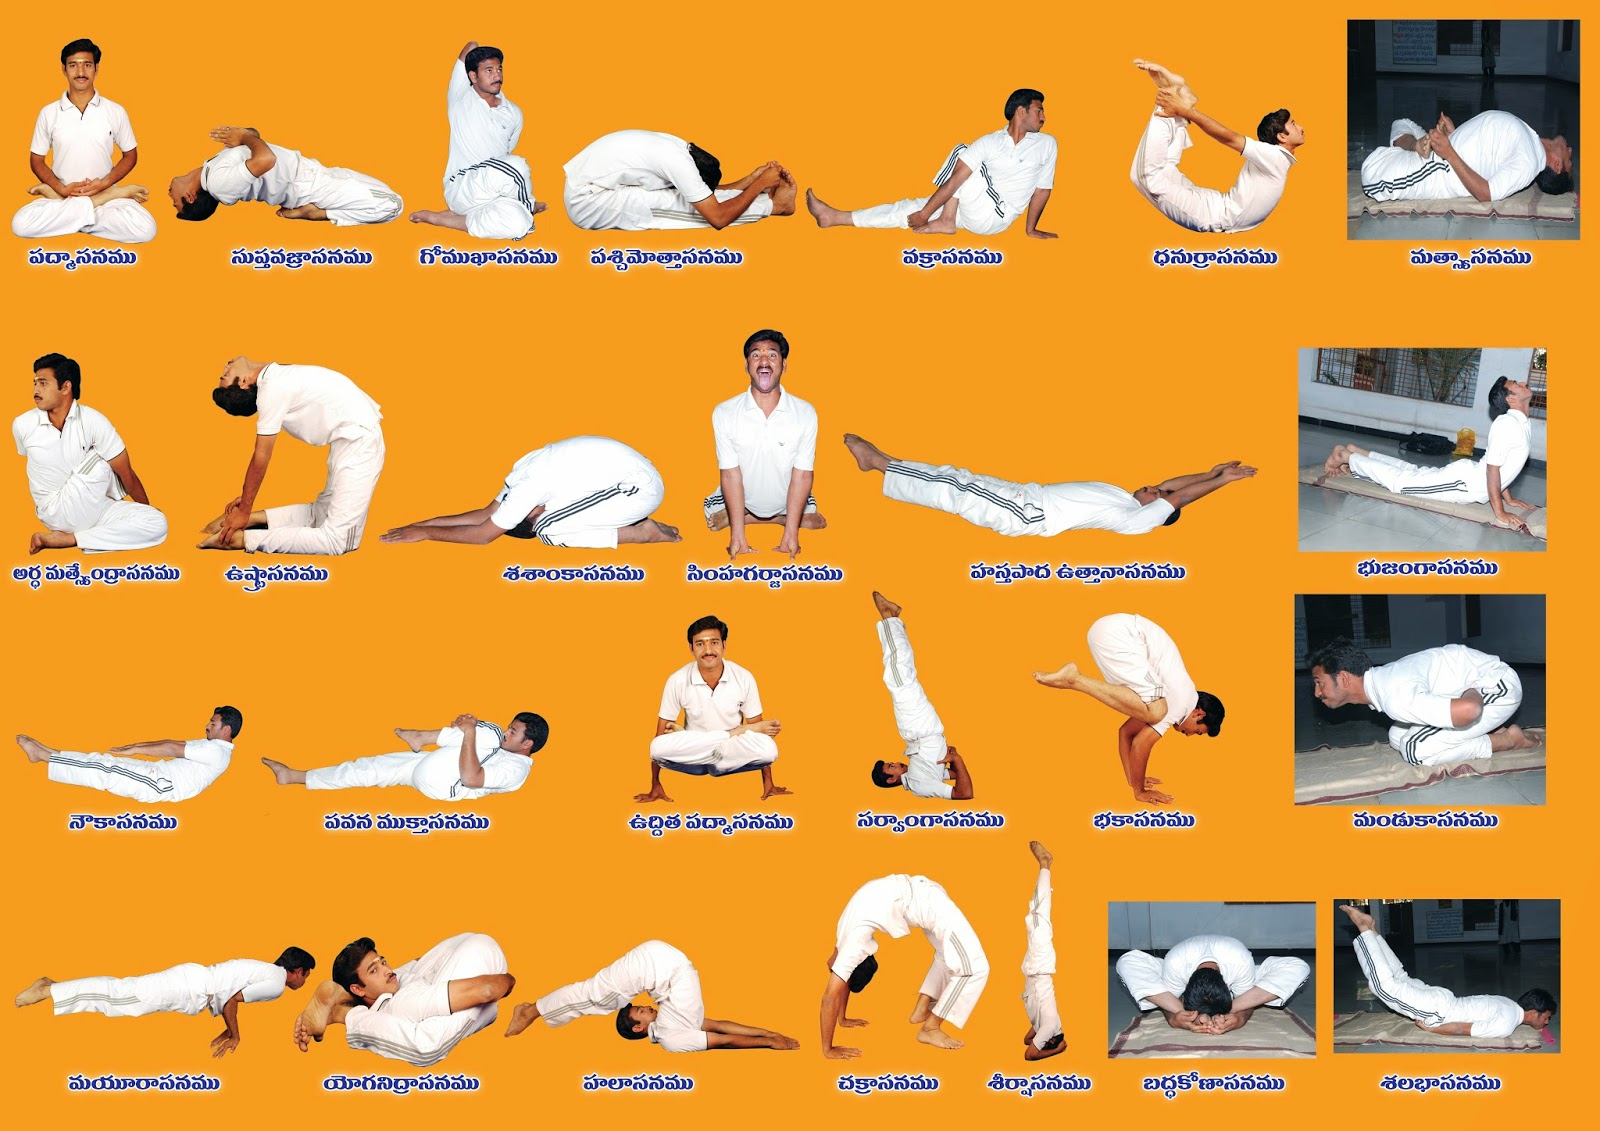 The Practice Of Yoga Makes Body Strong And Flexible It Also Improves Functioning Respiratory Circulatory Digestive Hormonal Systems